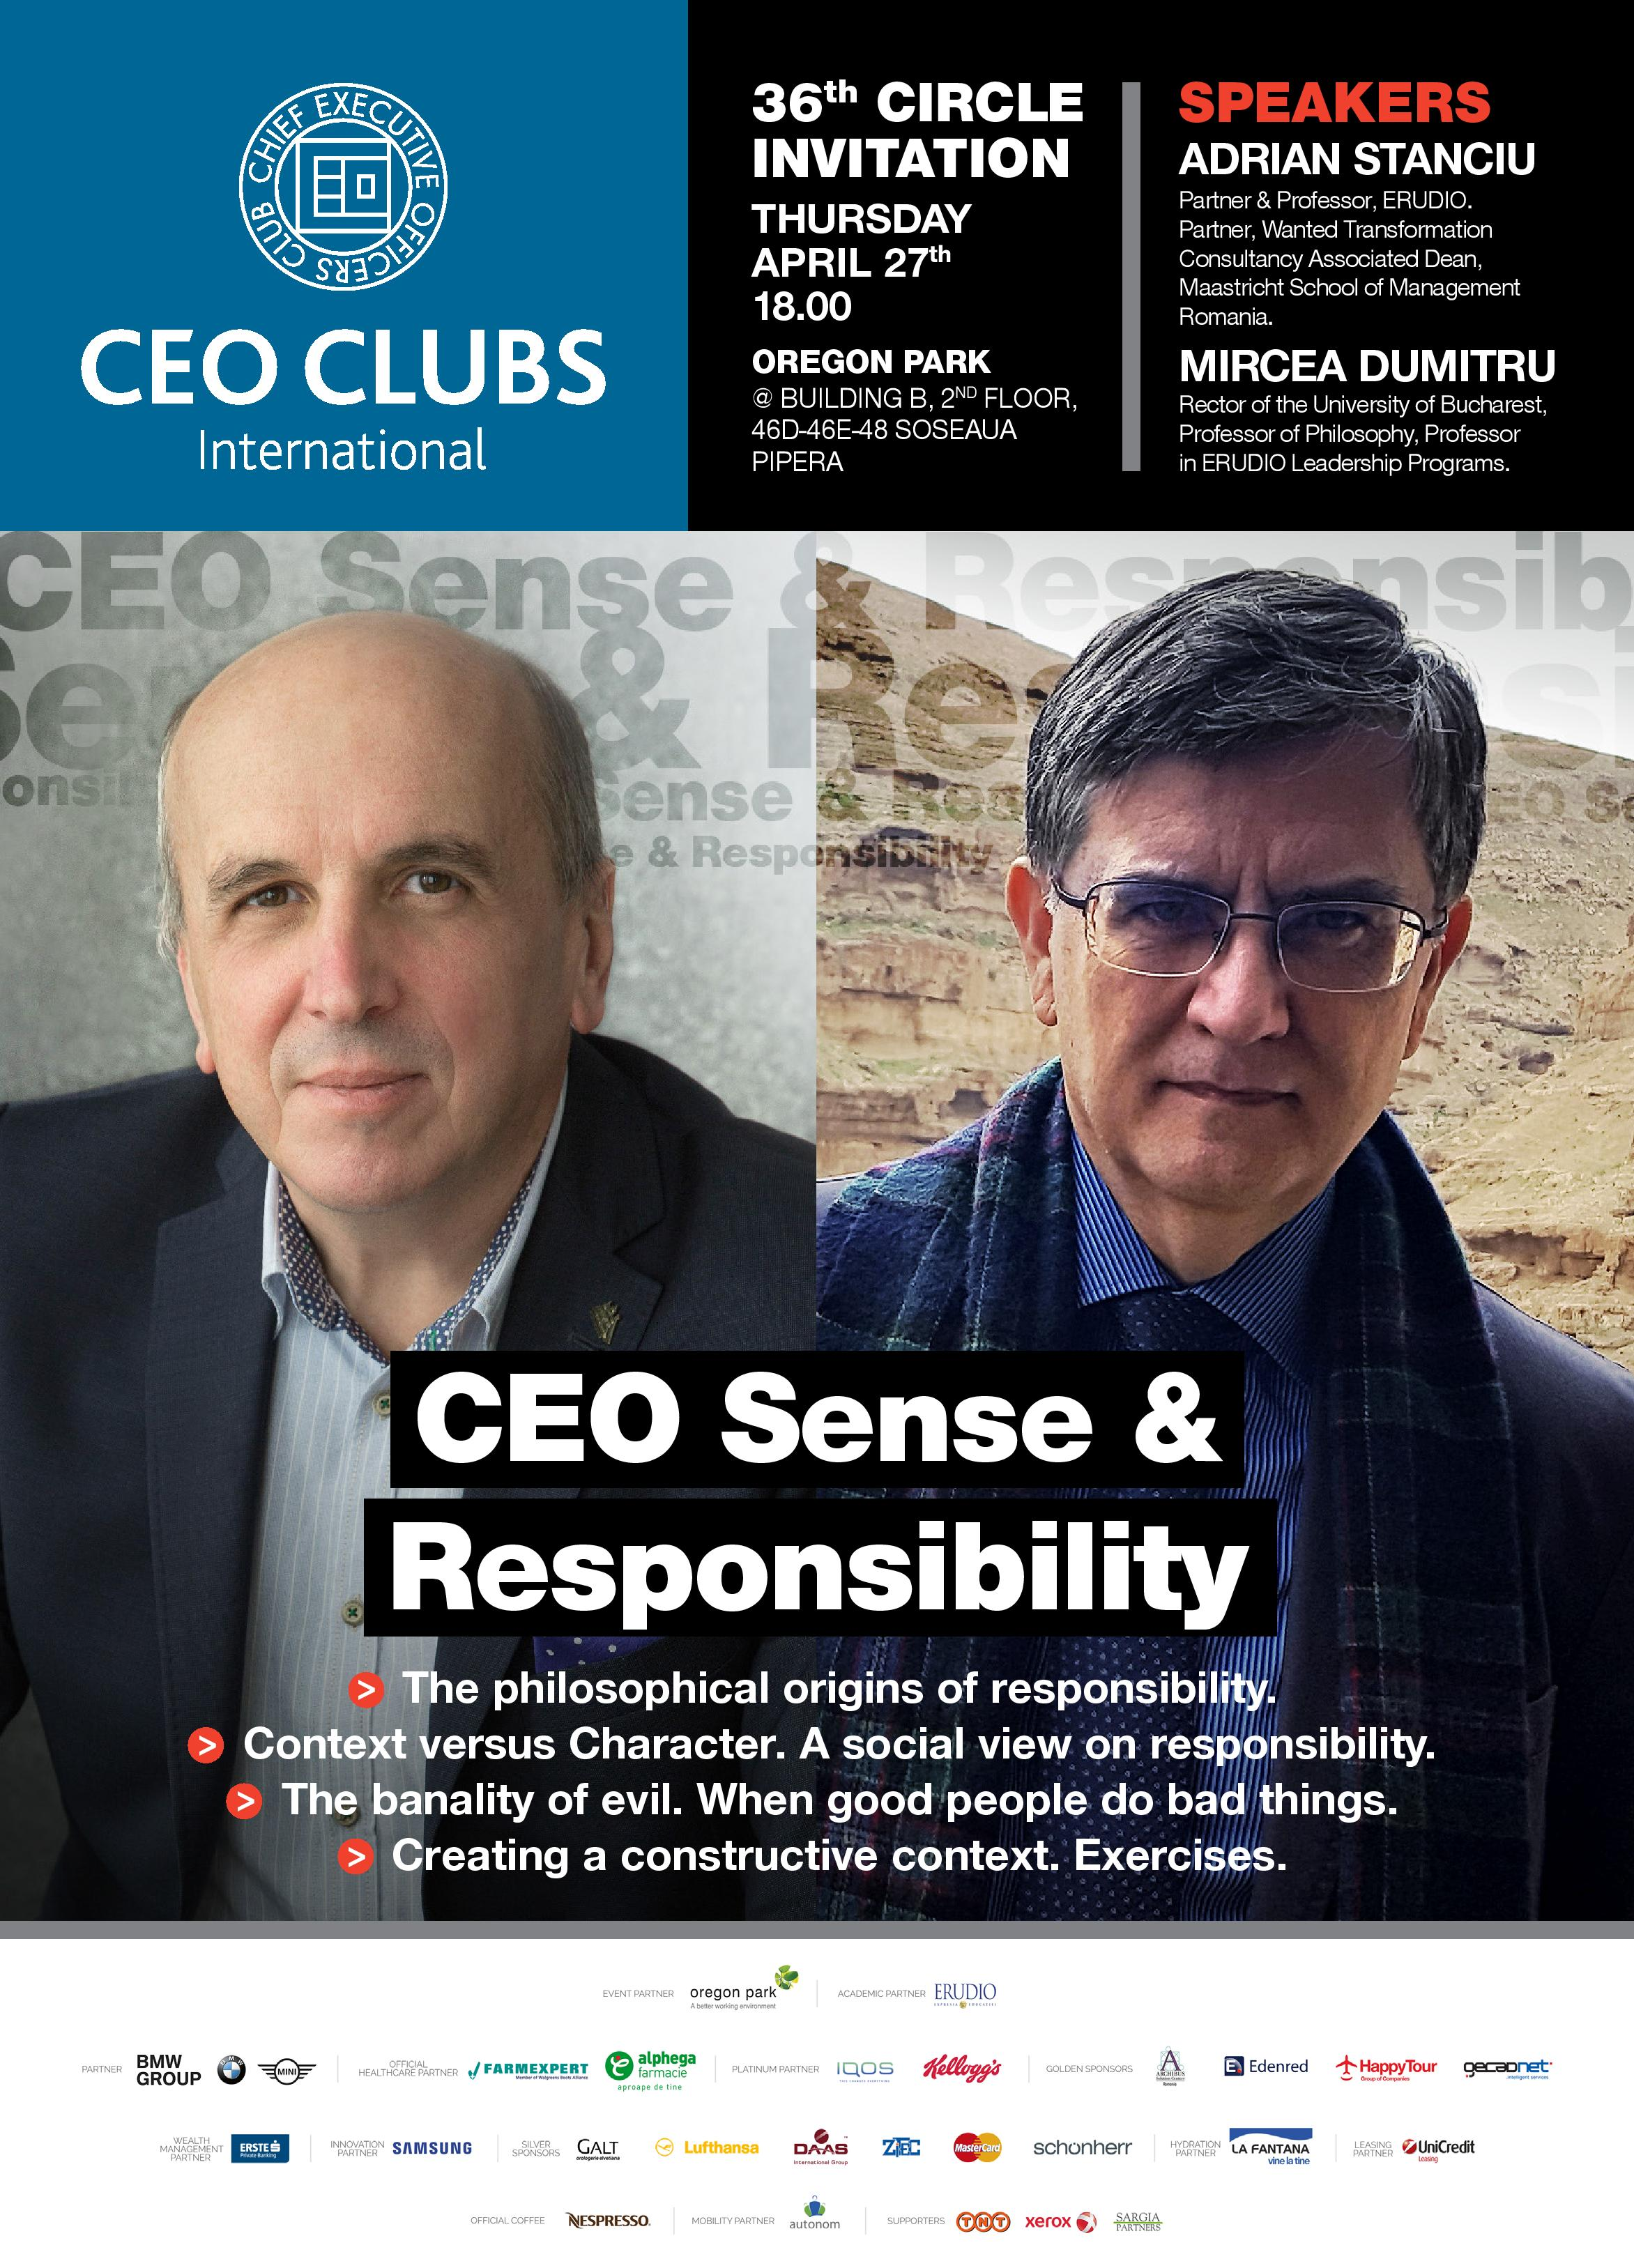 The 36th Circle: CEO Sense and Responsibility